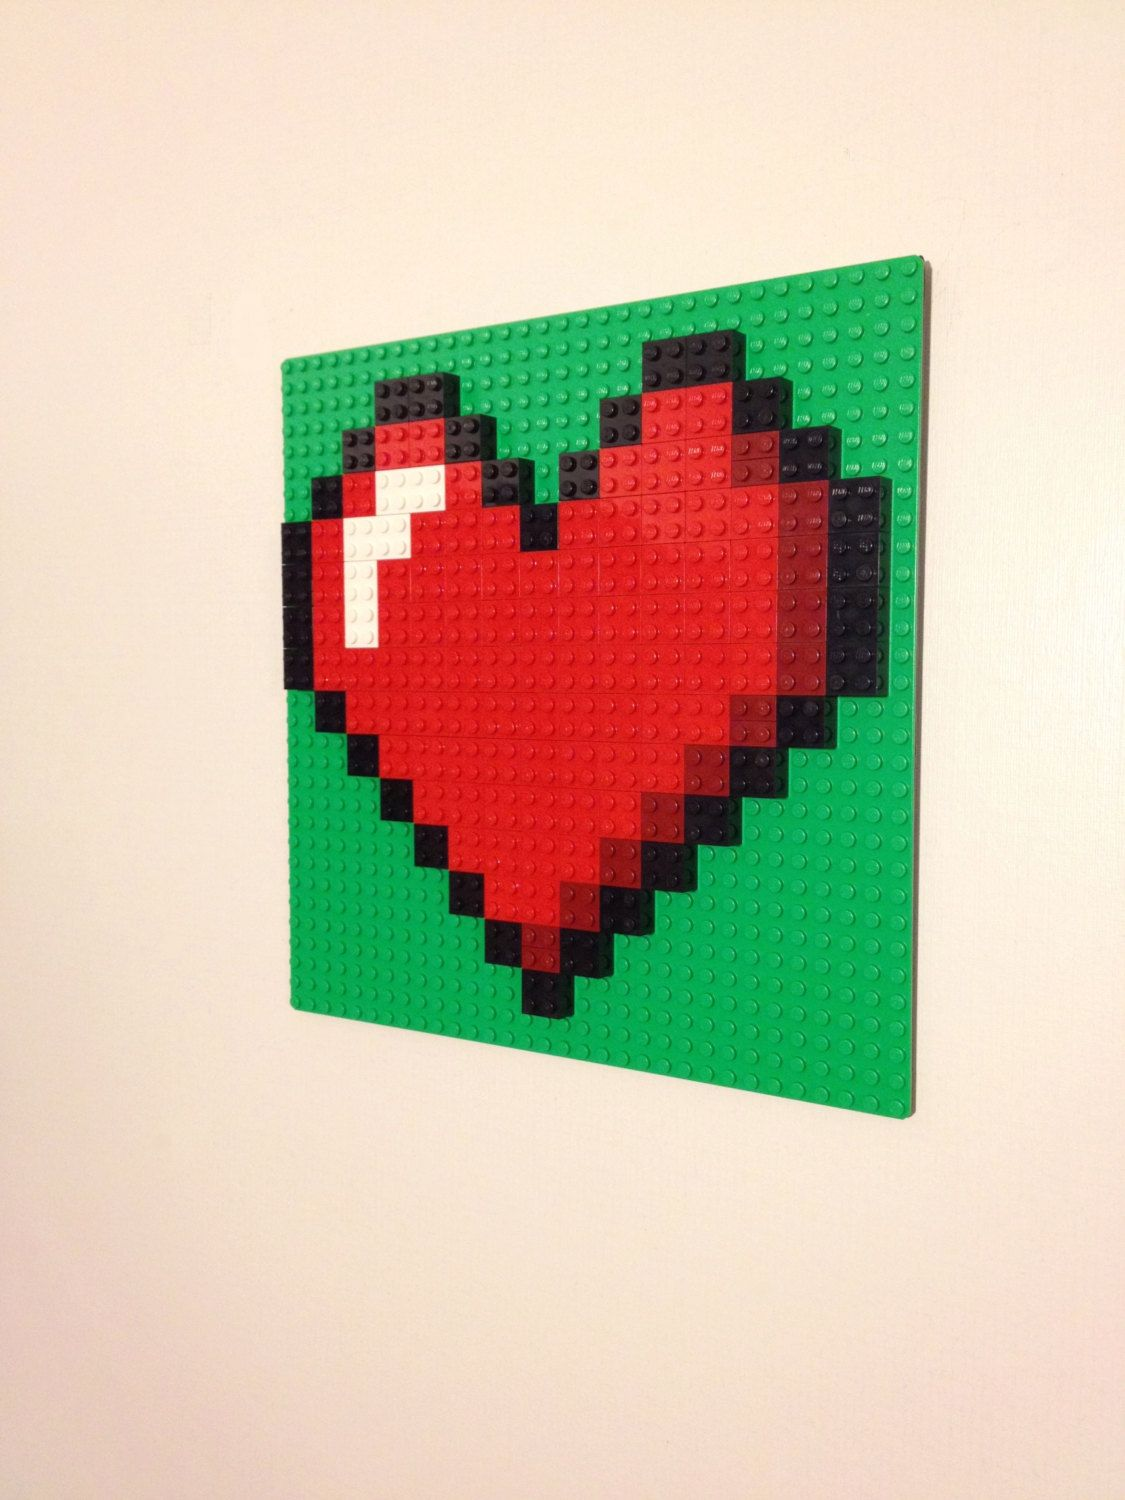 Lego Bedroom Decor Red Or Pink Heart Lego Wall Art Hanging Picture Pixel 8 Bit